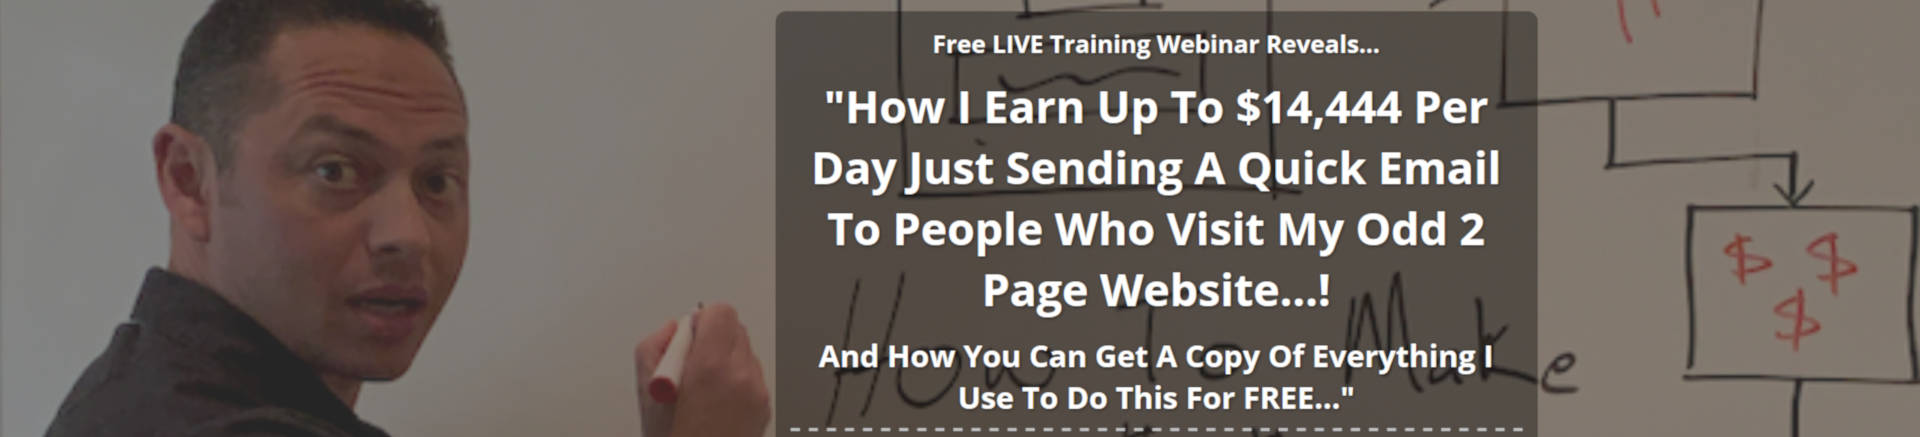 Get Training Program  1k A Day Fast Track Free